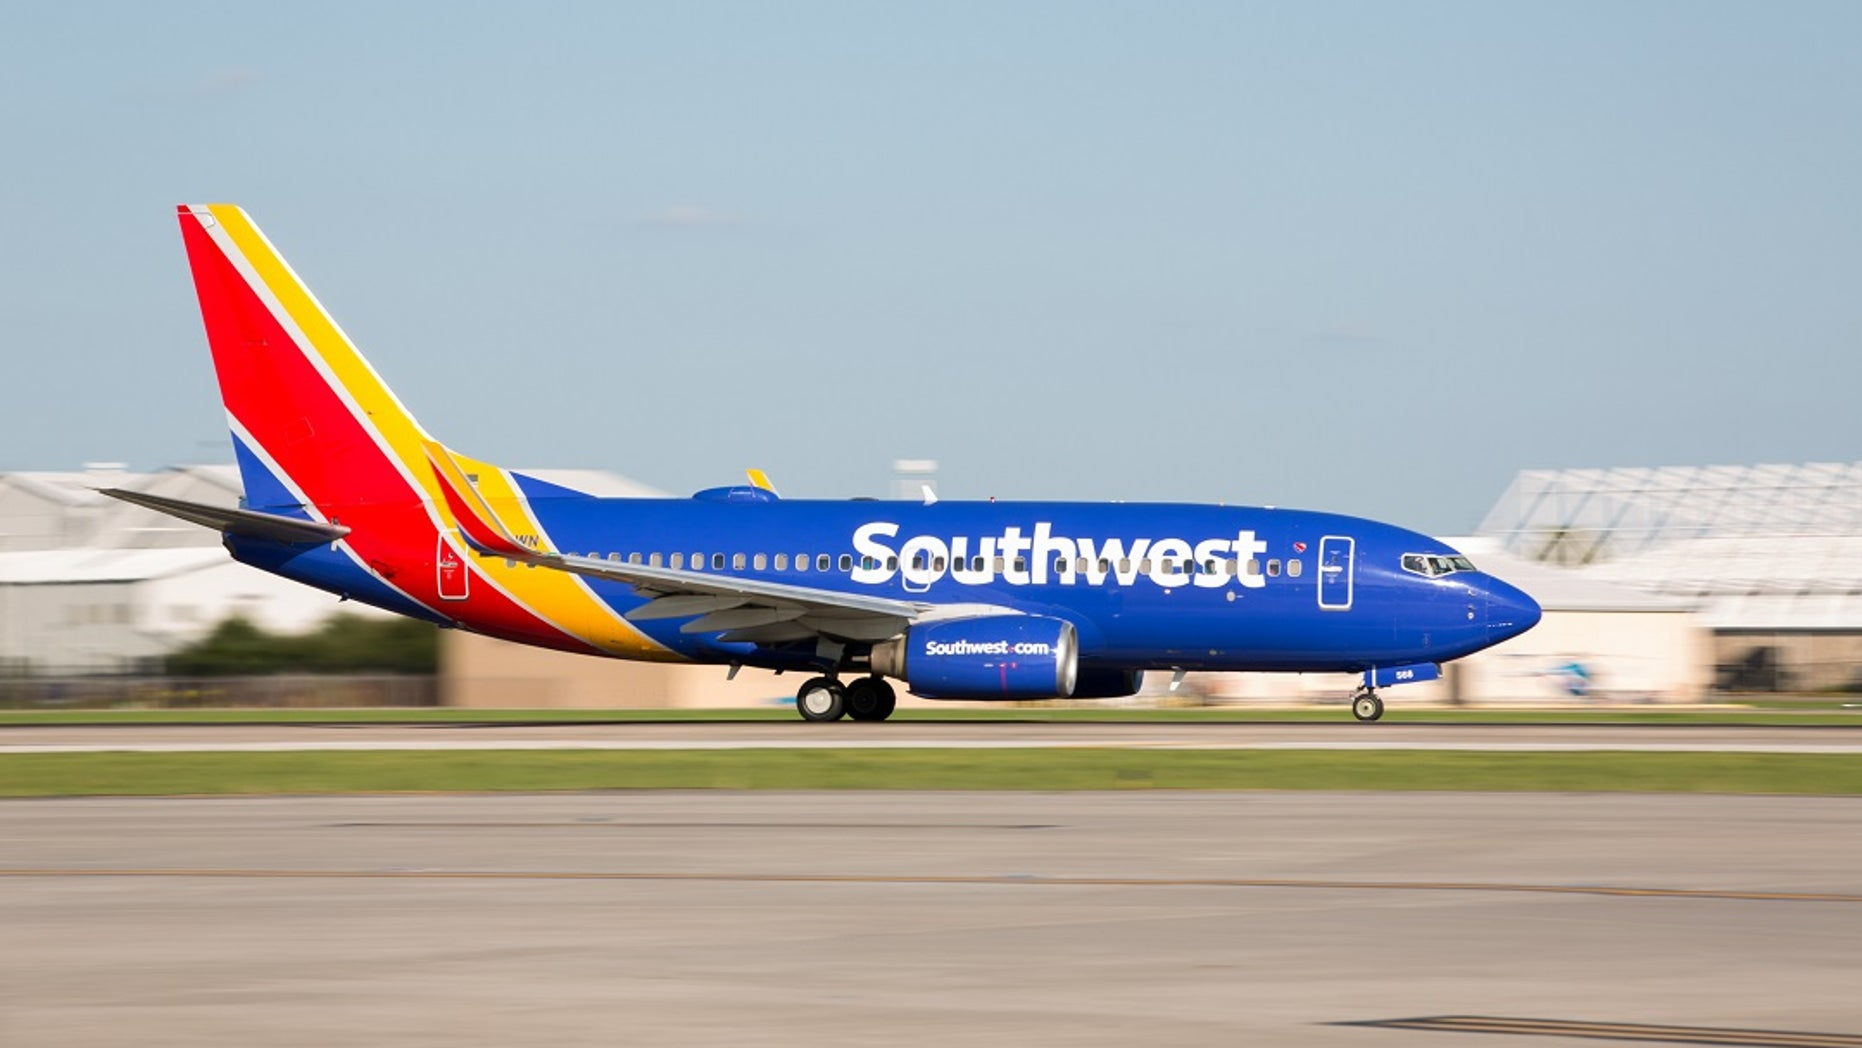 A Southwest airliner takes off.